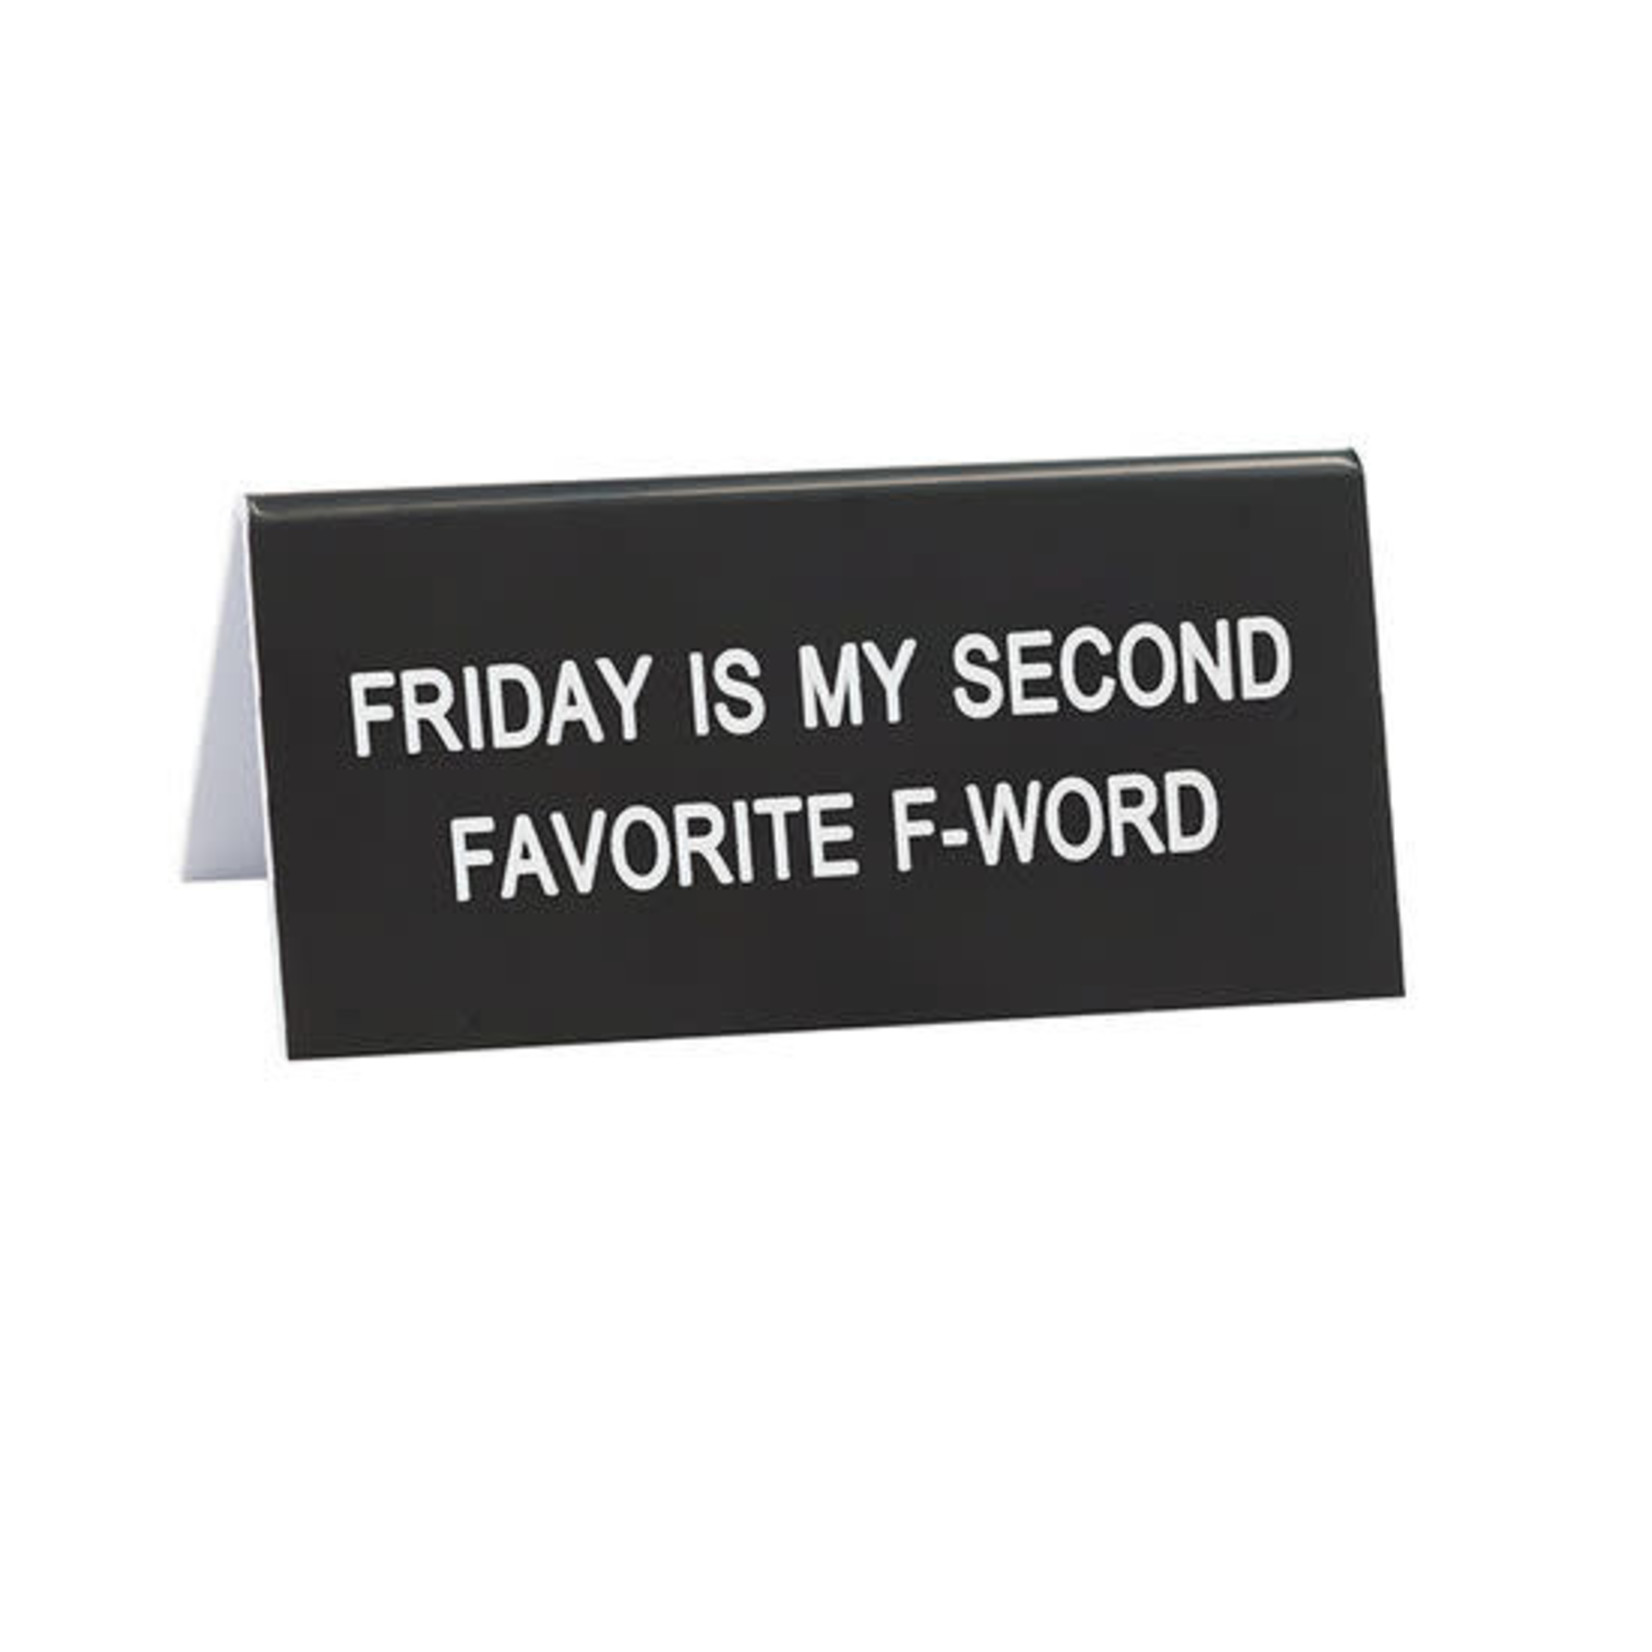 About Face Designs, Inc F-Word Desk Sign